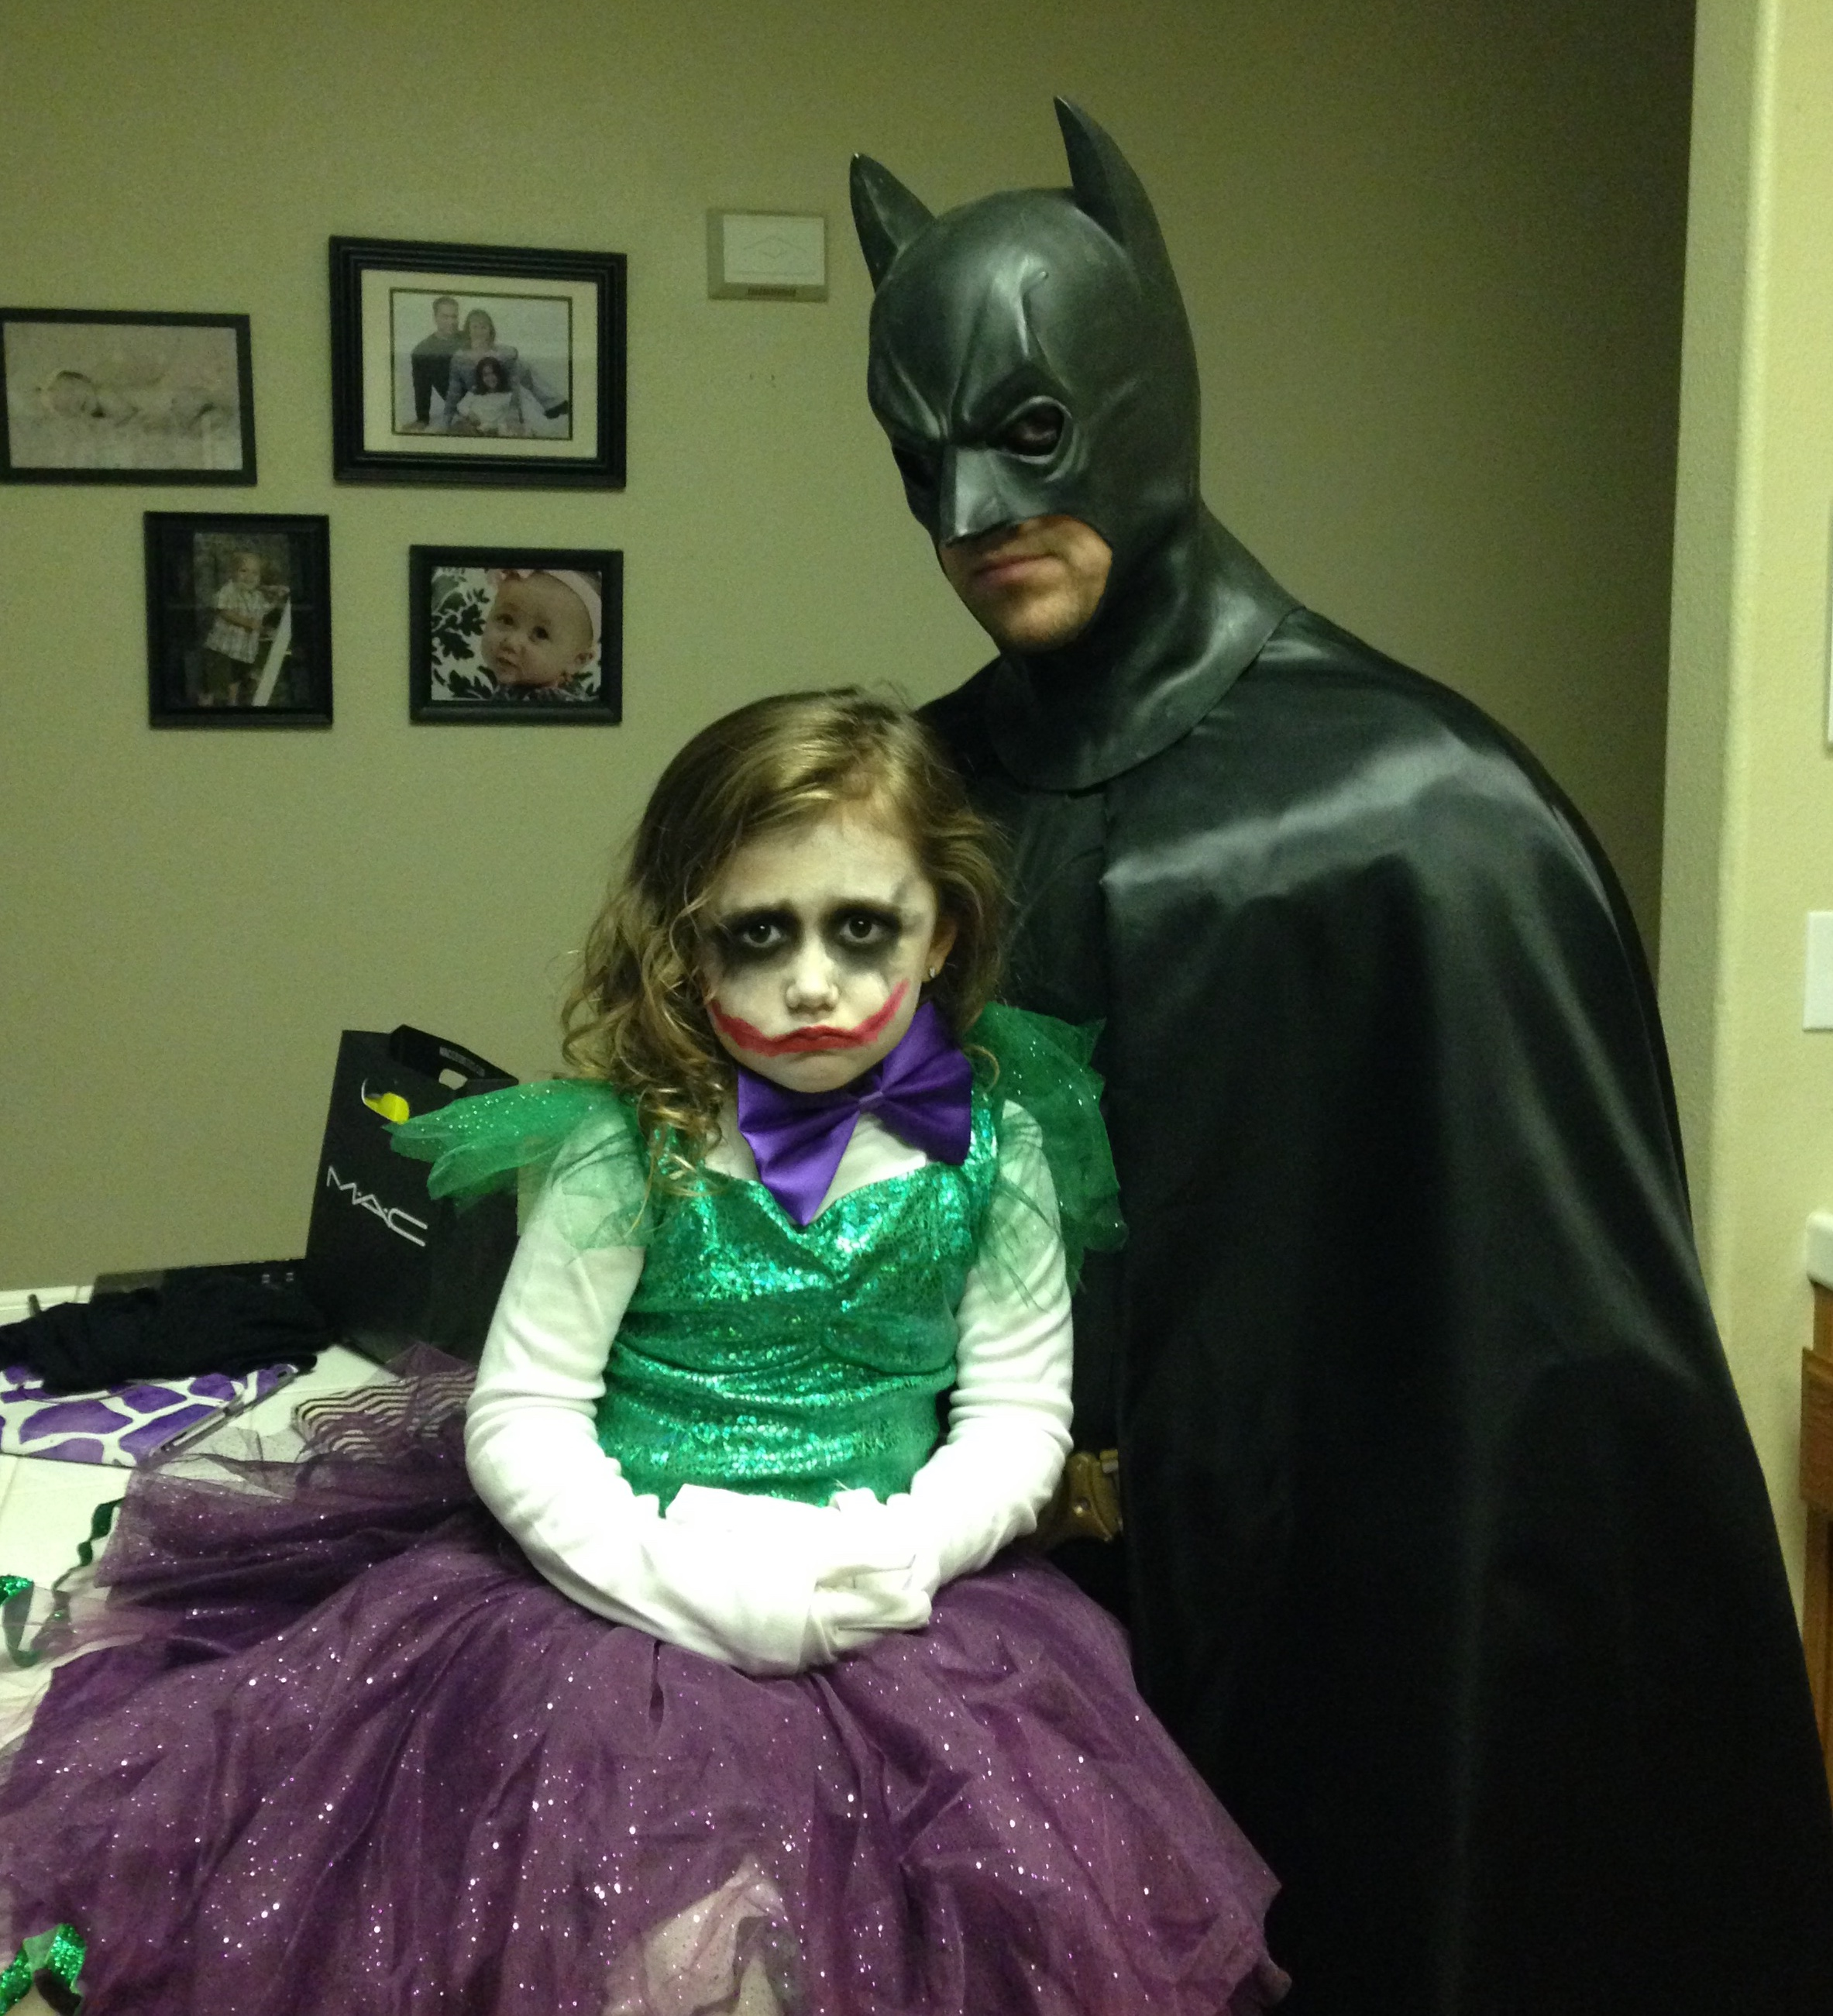 Batman And Joker Costume For Dads And Daugthers Costume Yeti